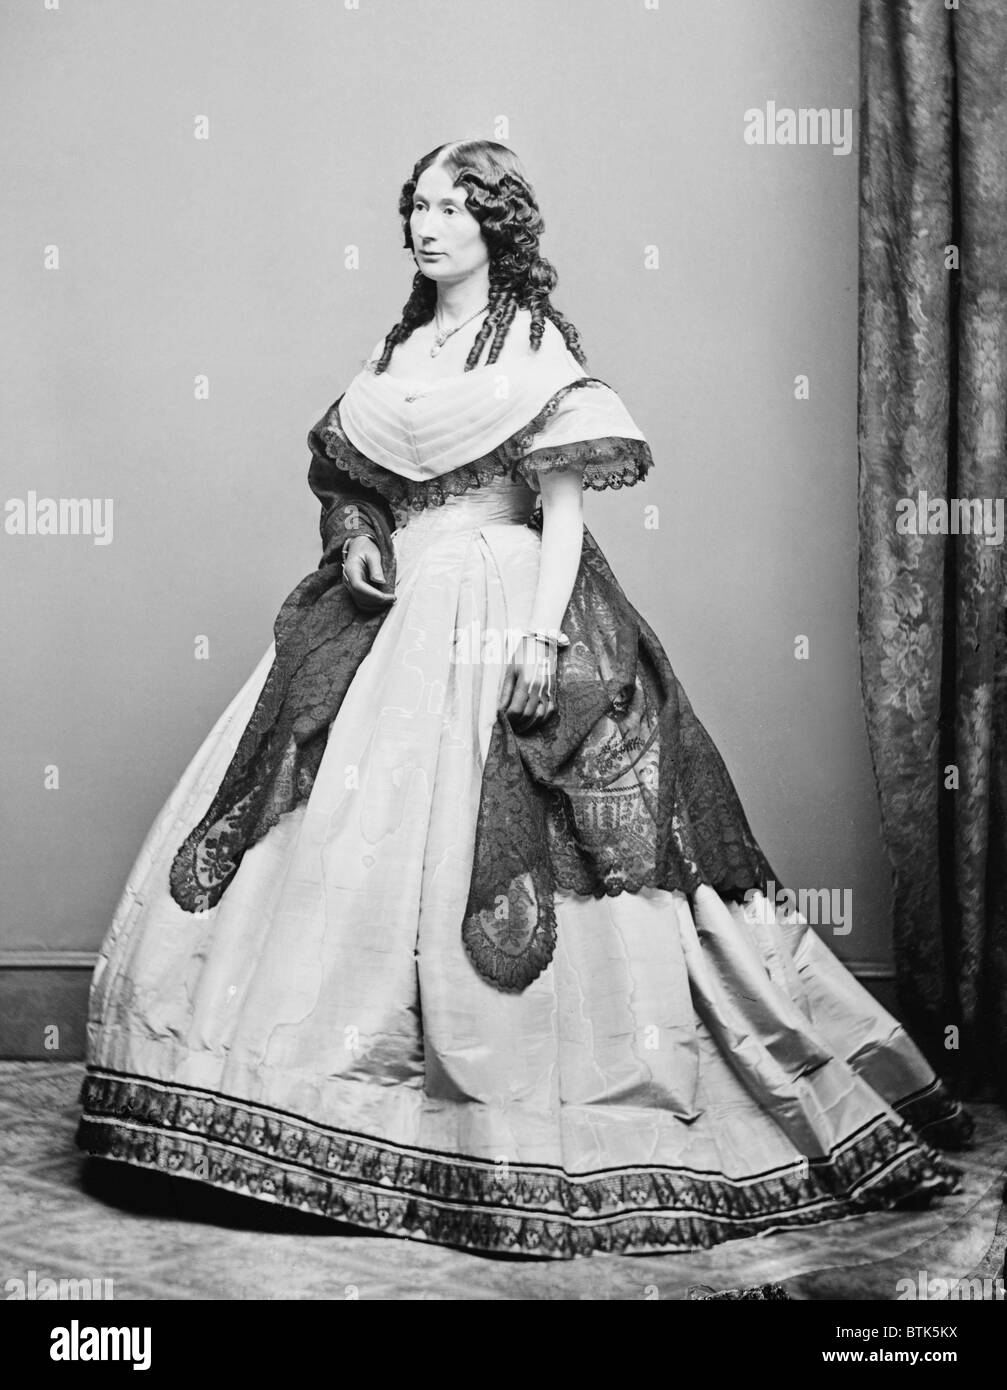 Laura Keene (1820-1873), English born actress, managed the theater company that performed OUR AMERICAN COUSIN at - Stock Image